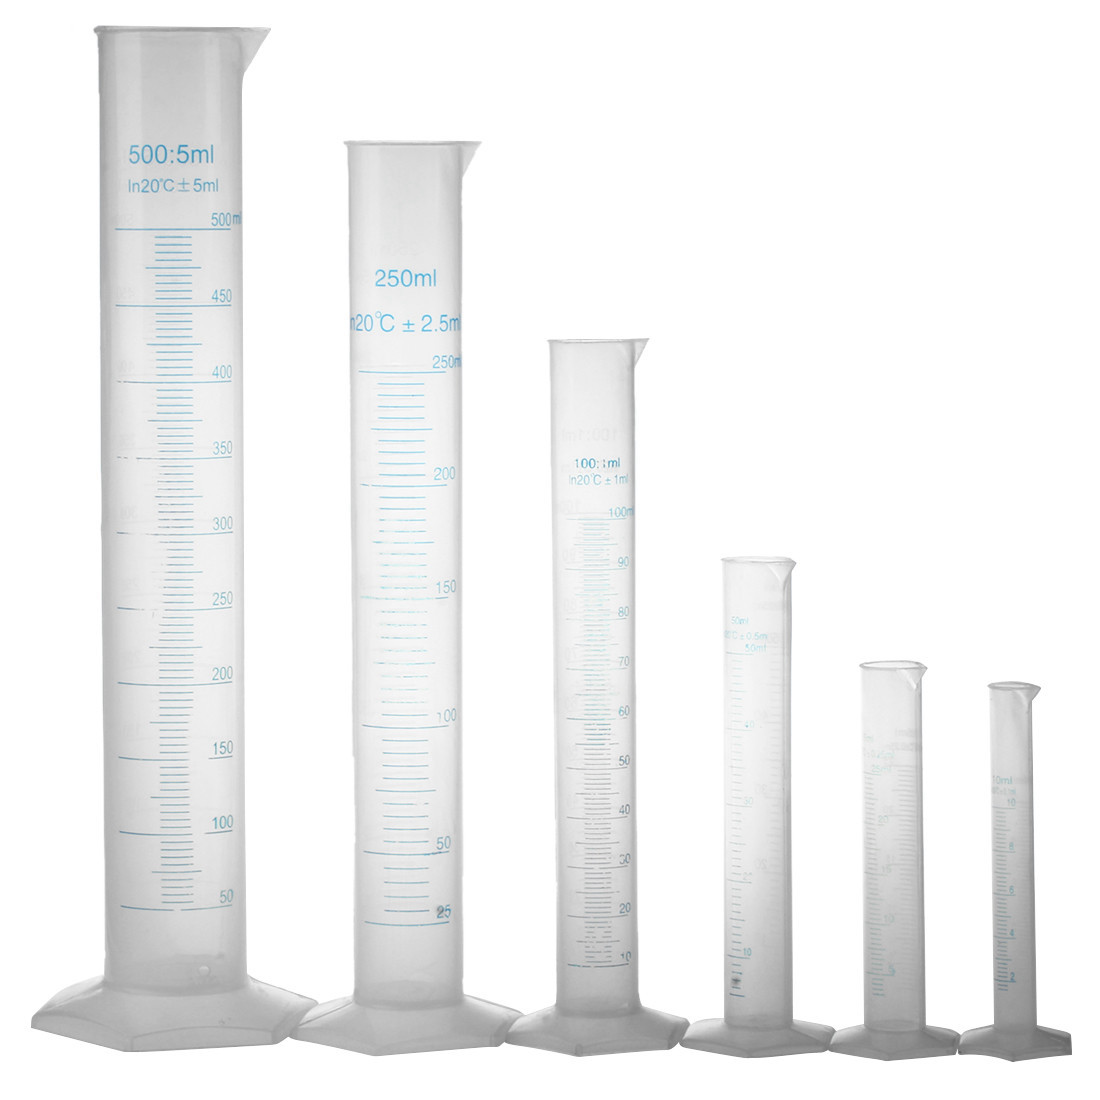 10 25 <font><b>50</b></font> 100 <font><b>250</b></font> 500ml graduated cylinder to measure students Laboratory DIY 6 pcs image